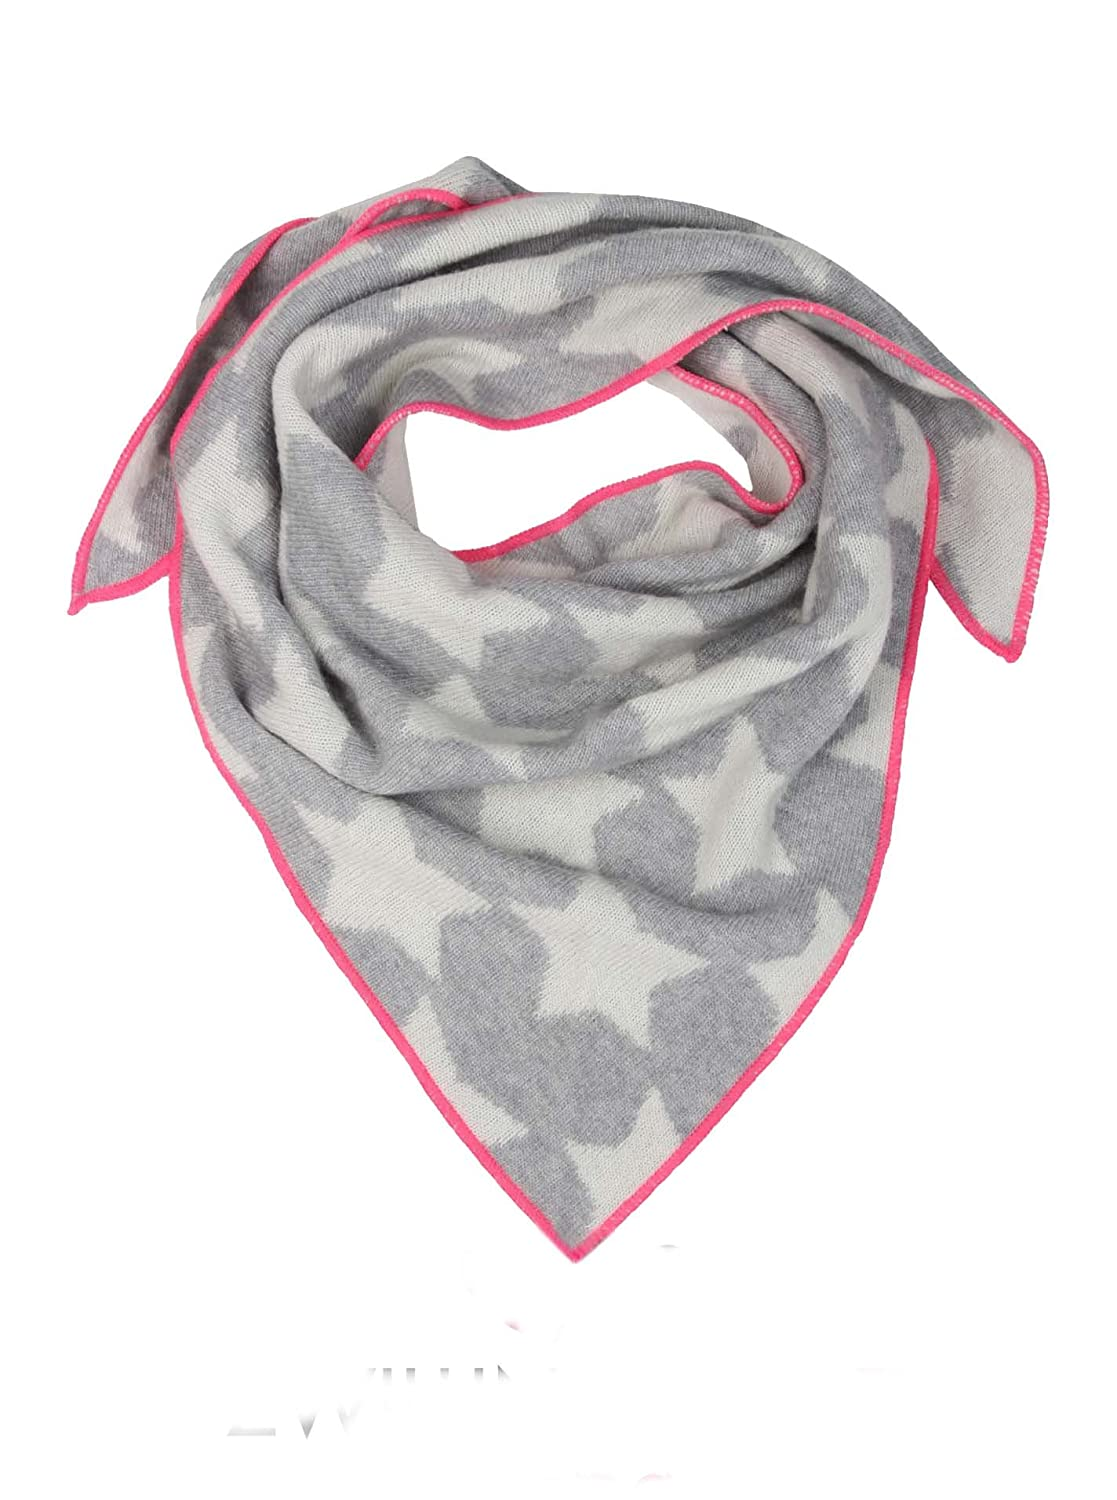 Cashmere Triangle Scarf Zwillingsherz XXL Neck Scarf and Ladies High quality scarf with stars for baby-s Boys and girls Cashmere Dreams knitwear for summer and winter